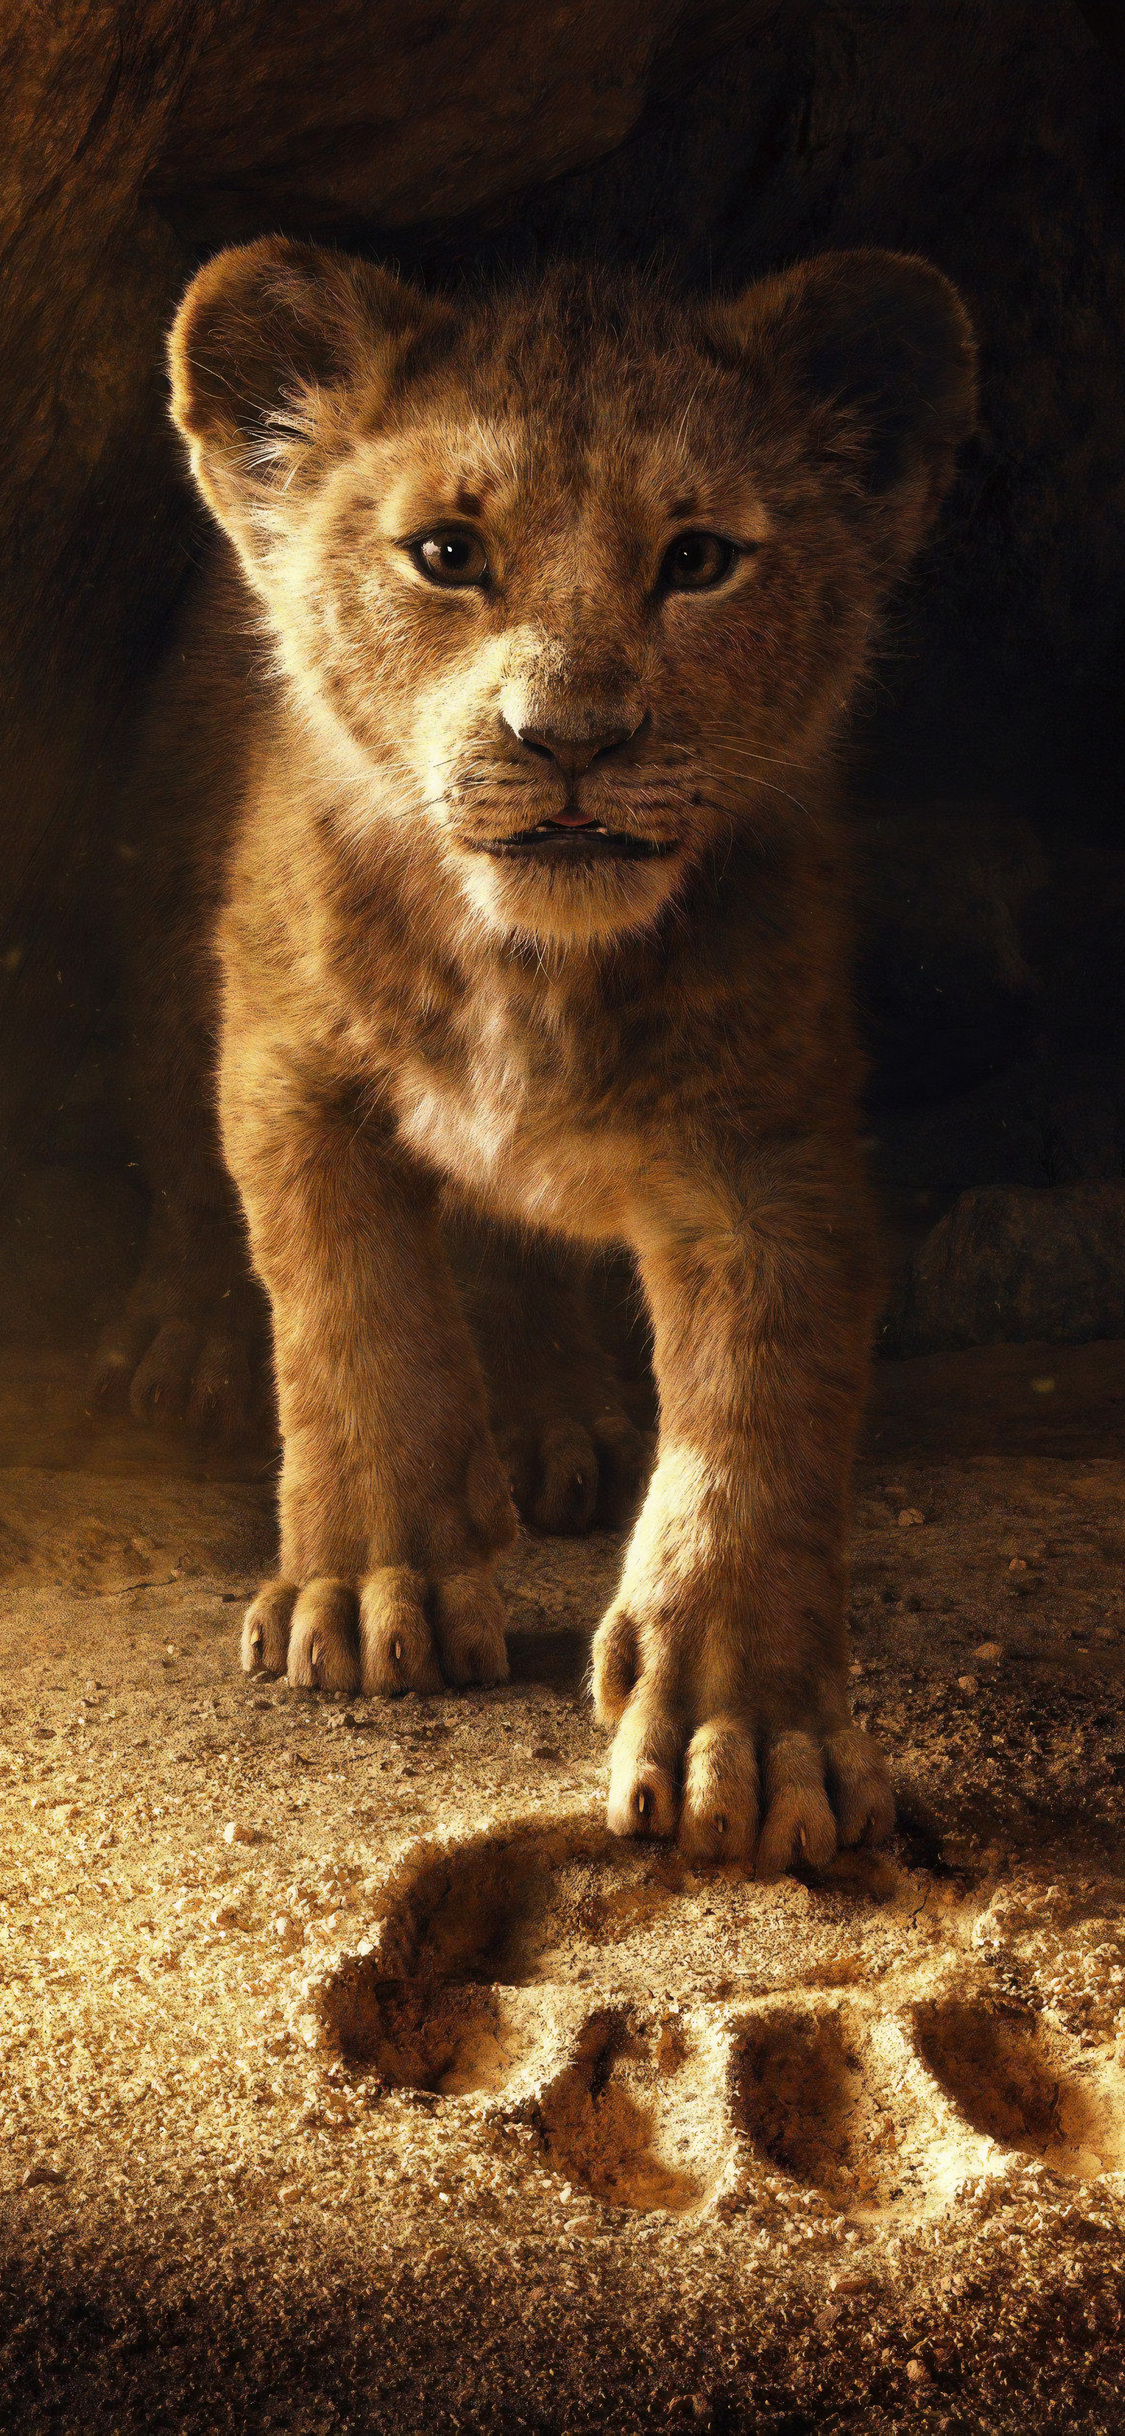 Ultra Hd Lion Hd Wallpaper For Android